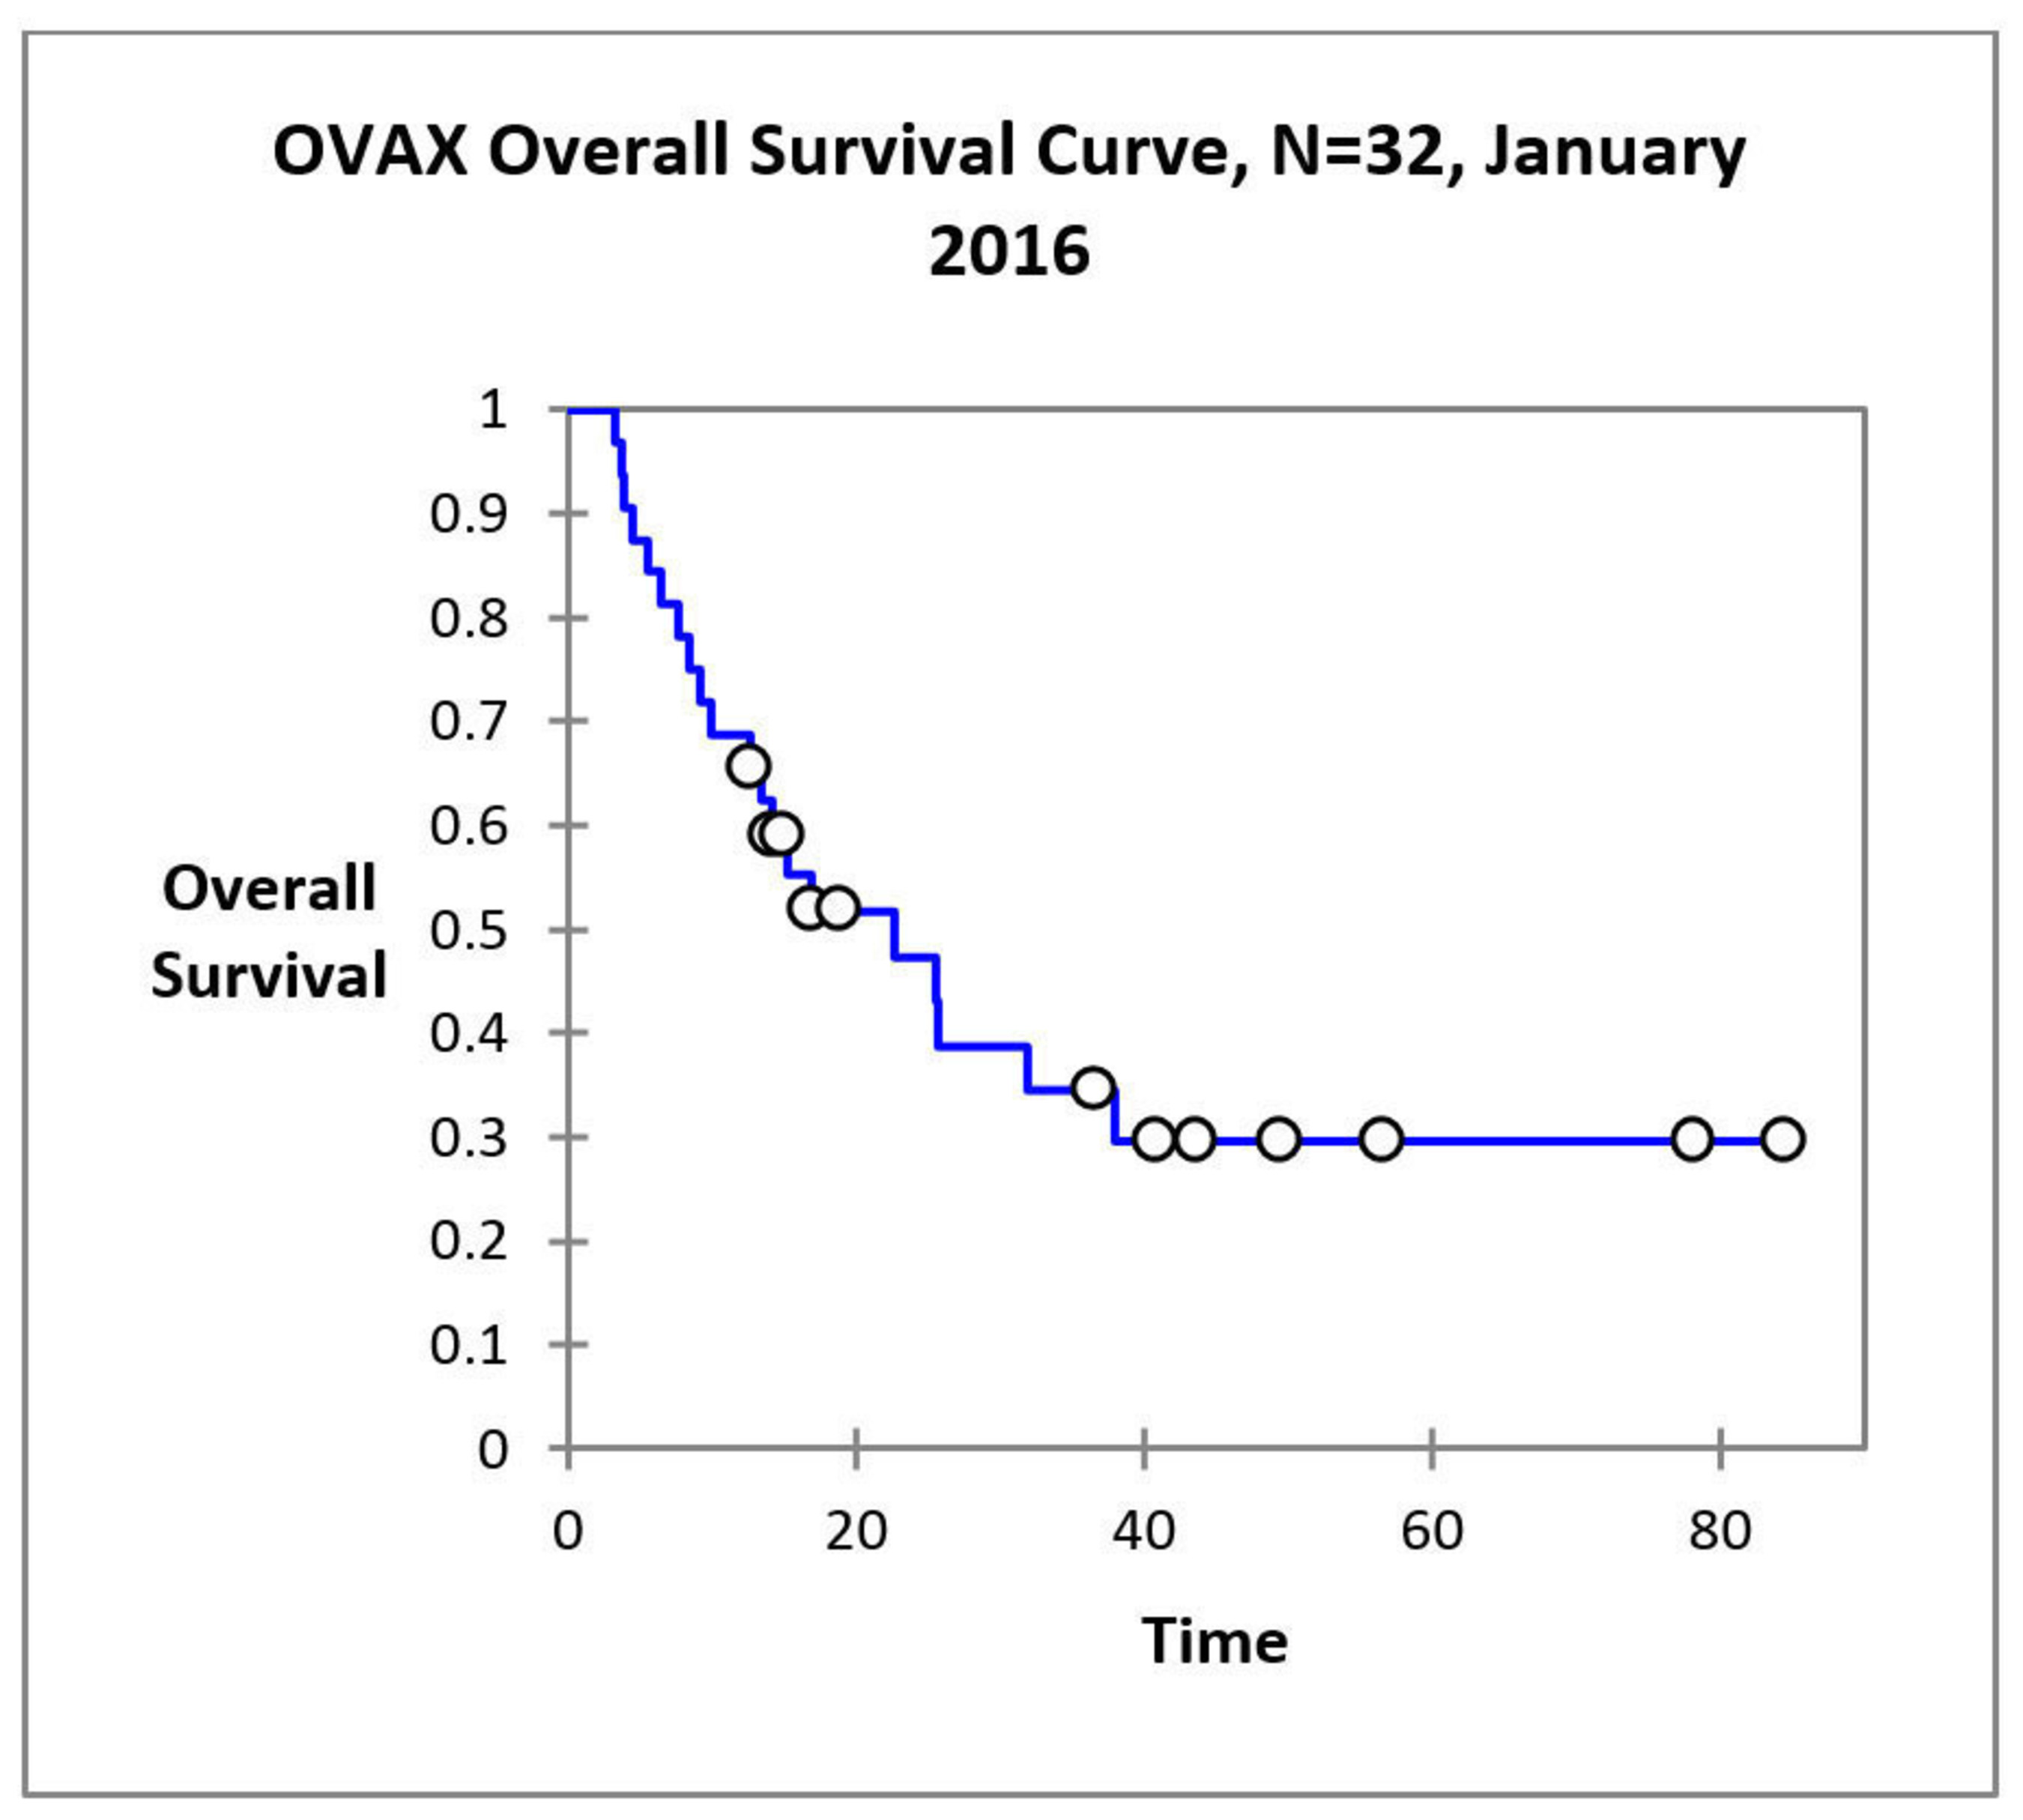 OVAX Phase 1/2 Clinical Trial Results.